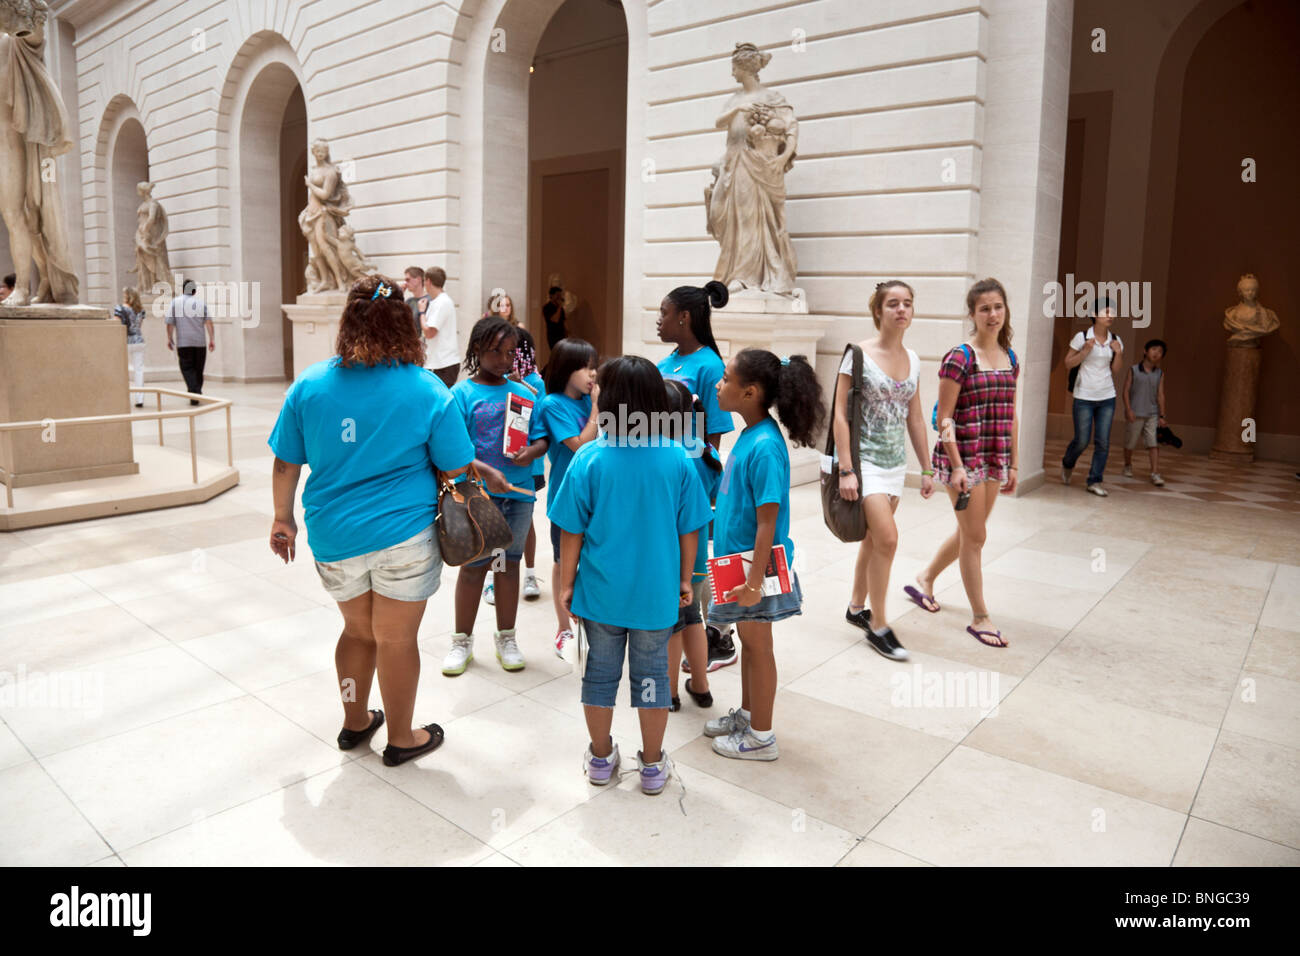 group of schoolgirls wearing identical bright blue tee shirts on a summer outing to the Metropolitan museum of Art - Stock Image